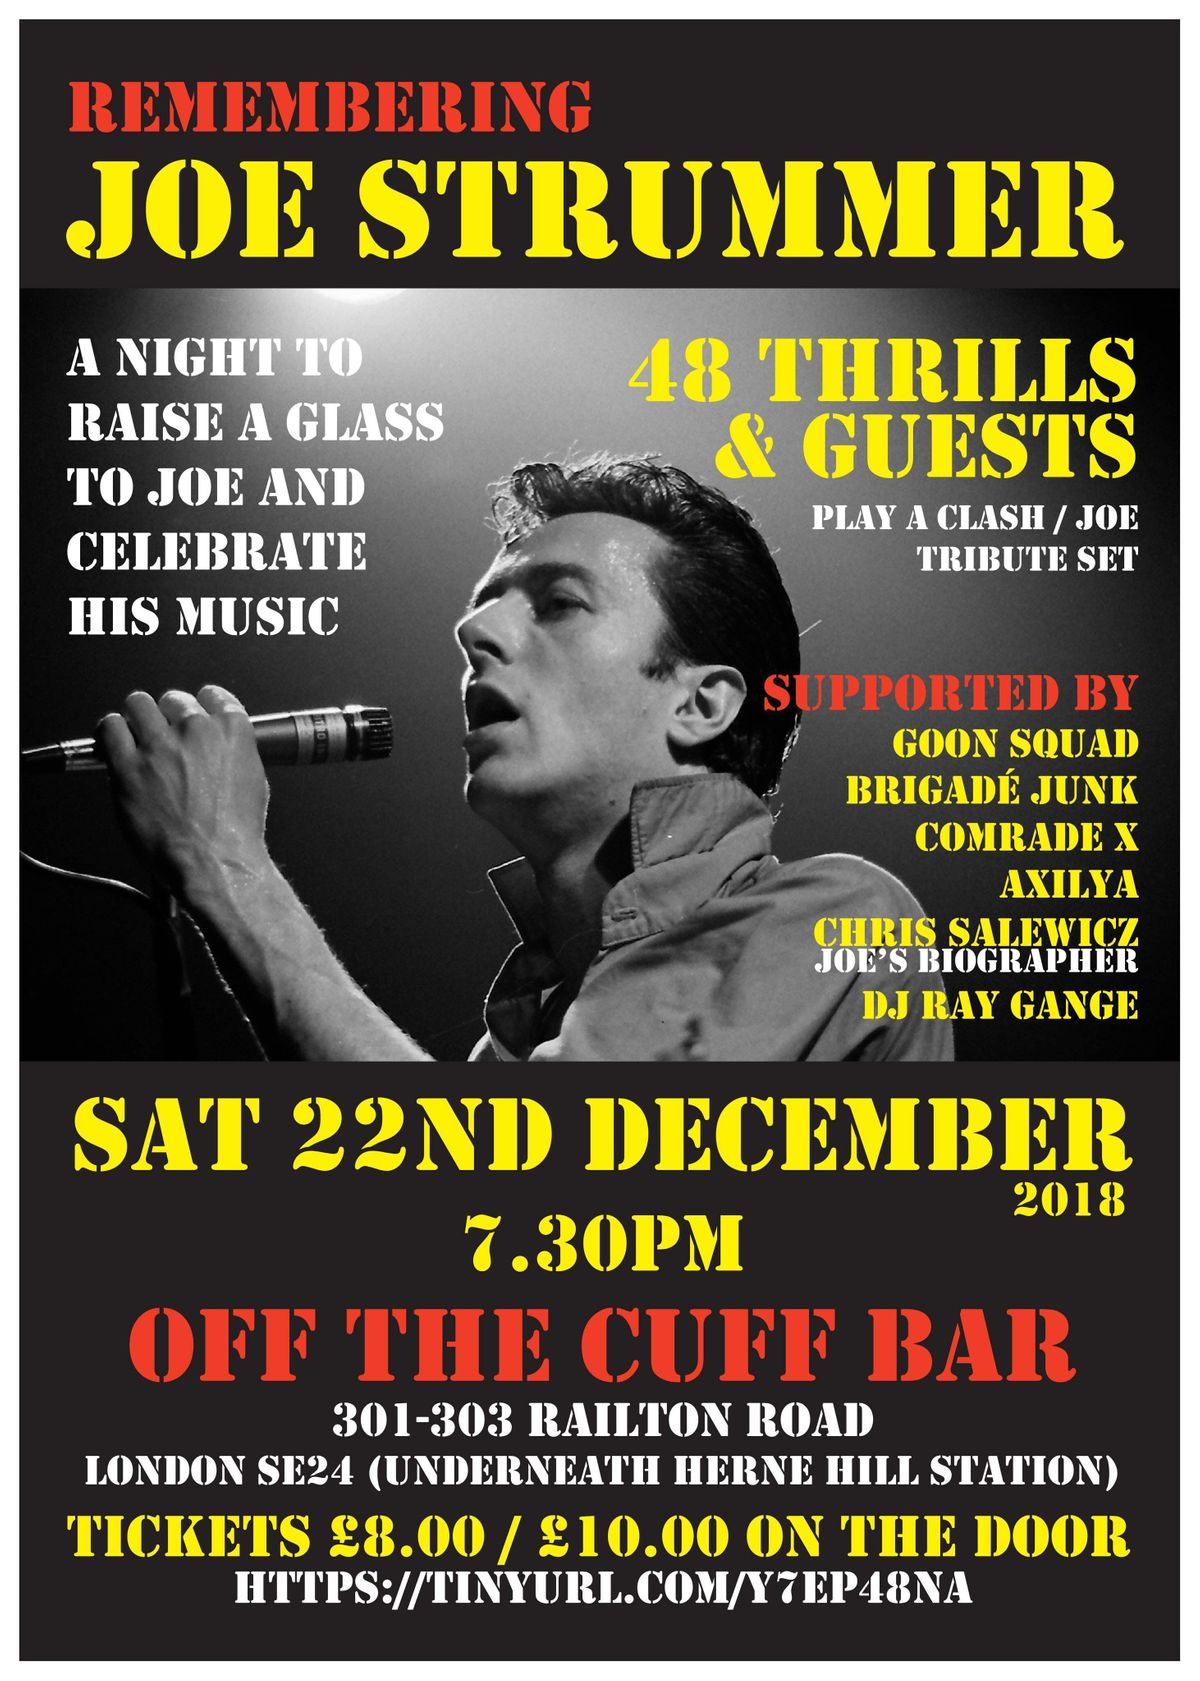 cfe6f1fe8c4a Remembering Joe Strummer - Celebrating The Clash at Off The Cuff